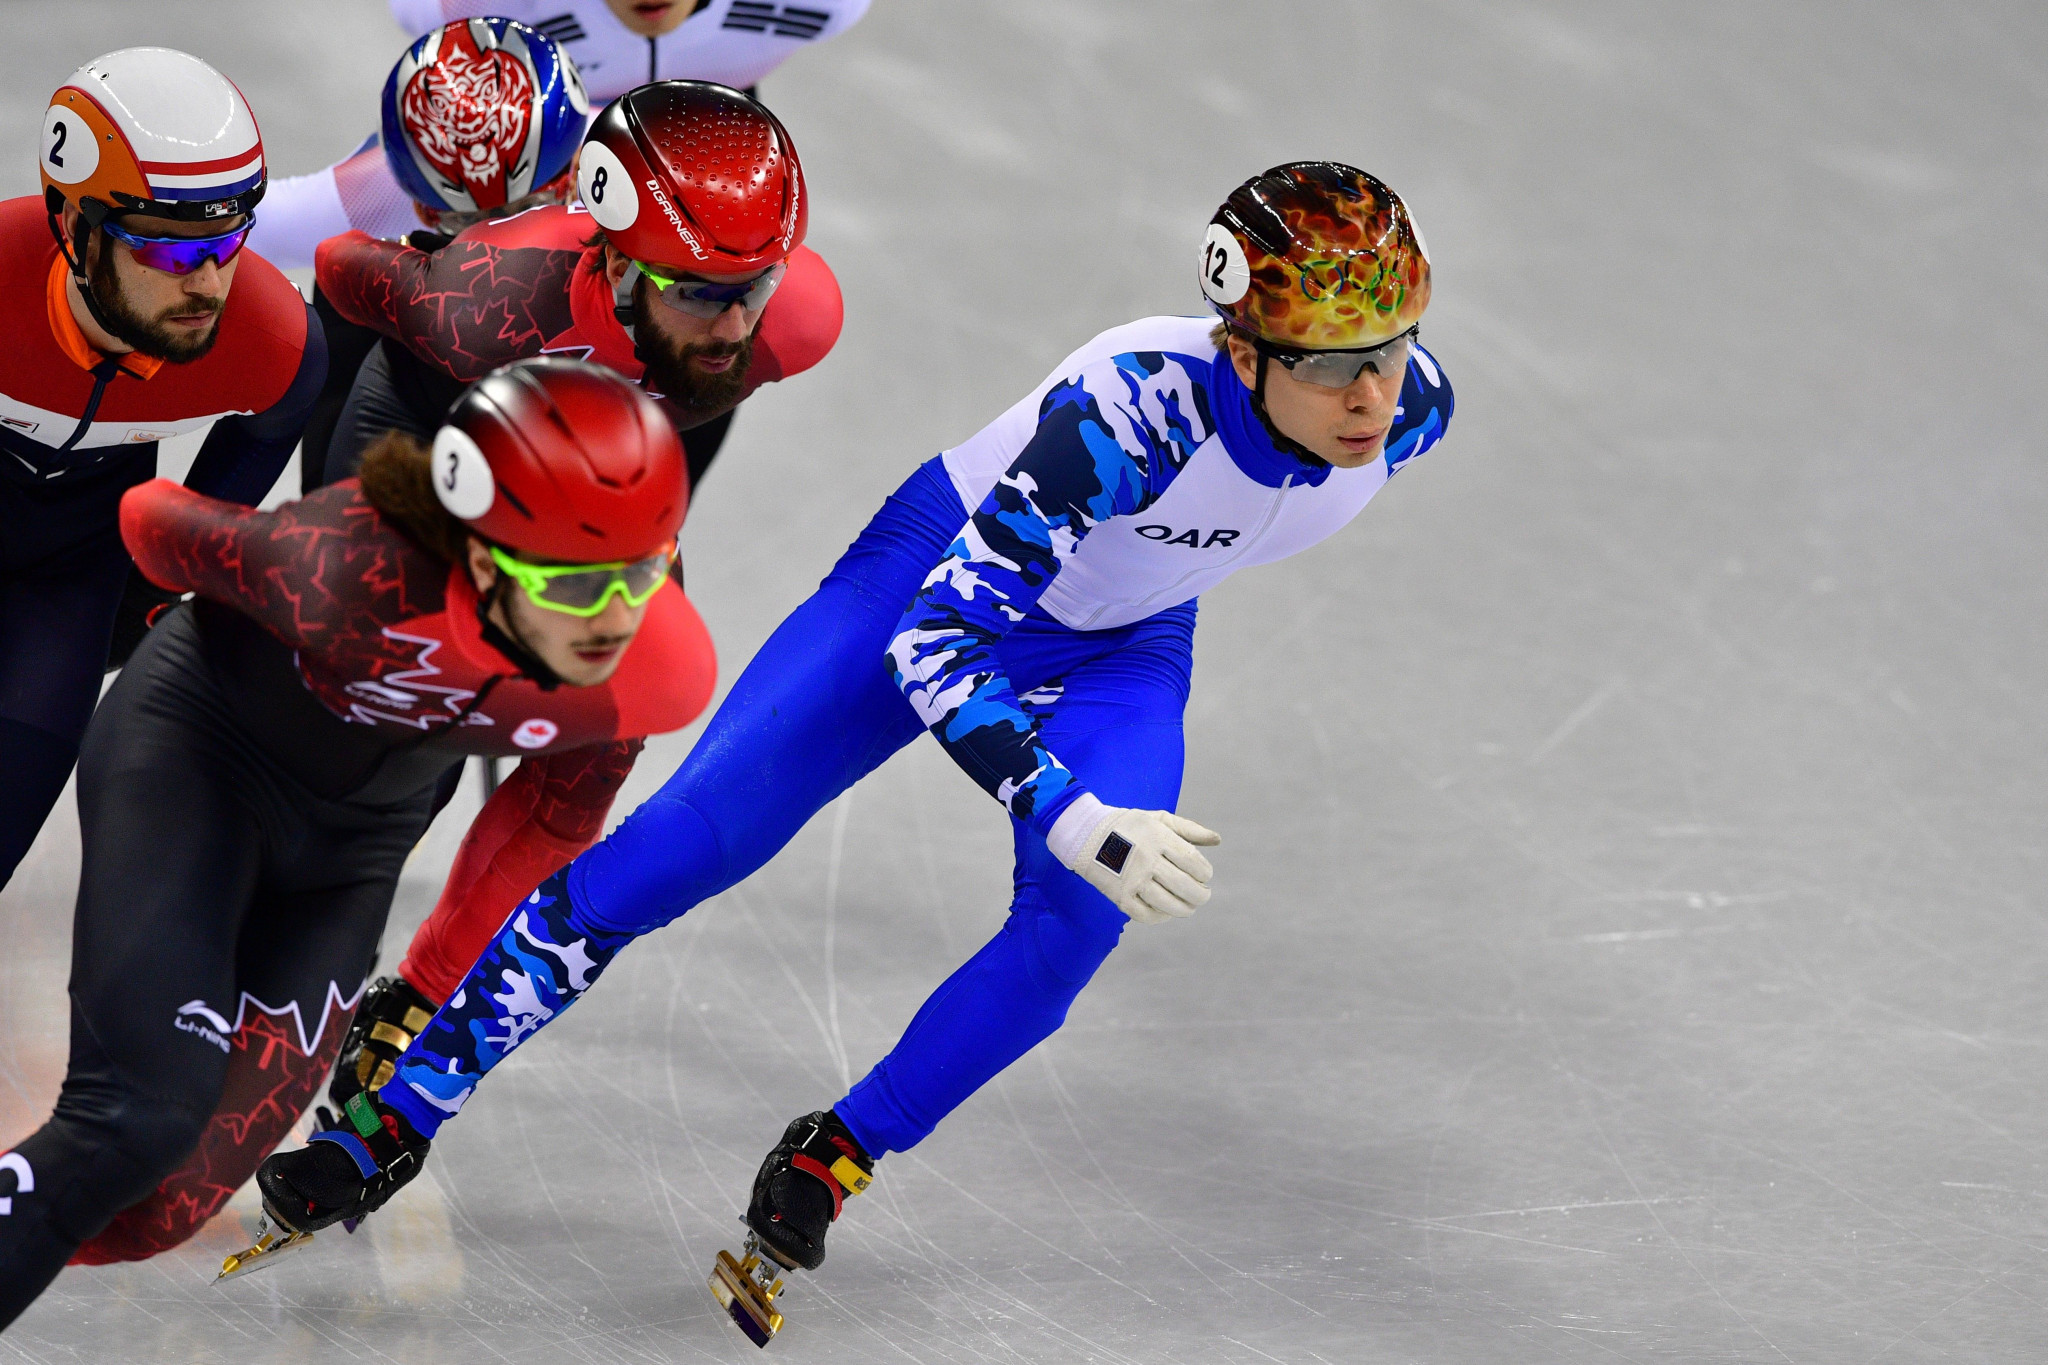 Semen Elistratov won the bronze, the first medal of Pyeongchang 2018 for the Olympic Athletes from Russia team ©Getty Images